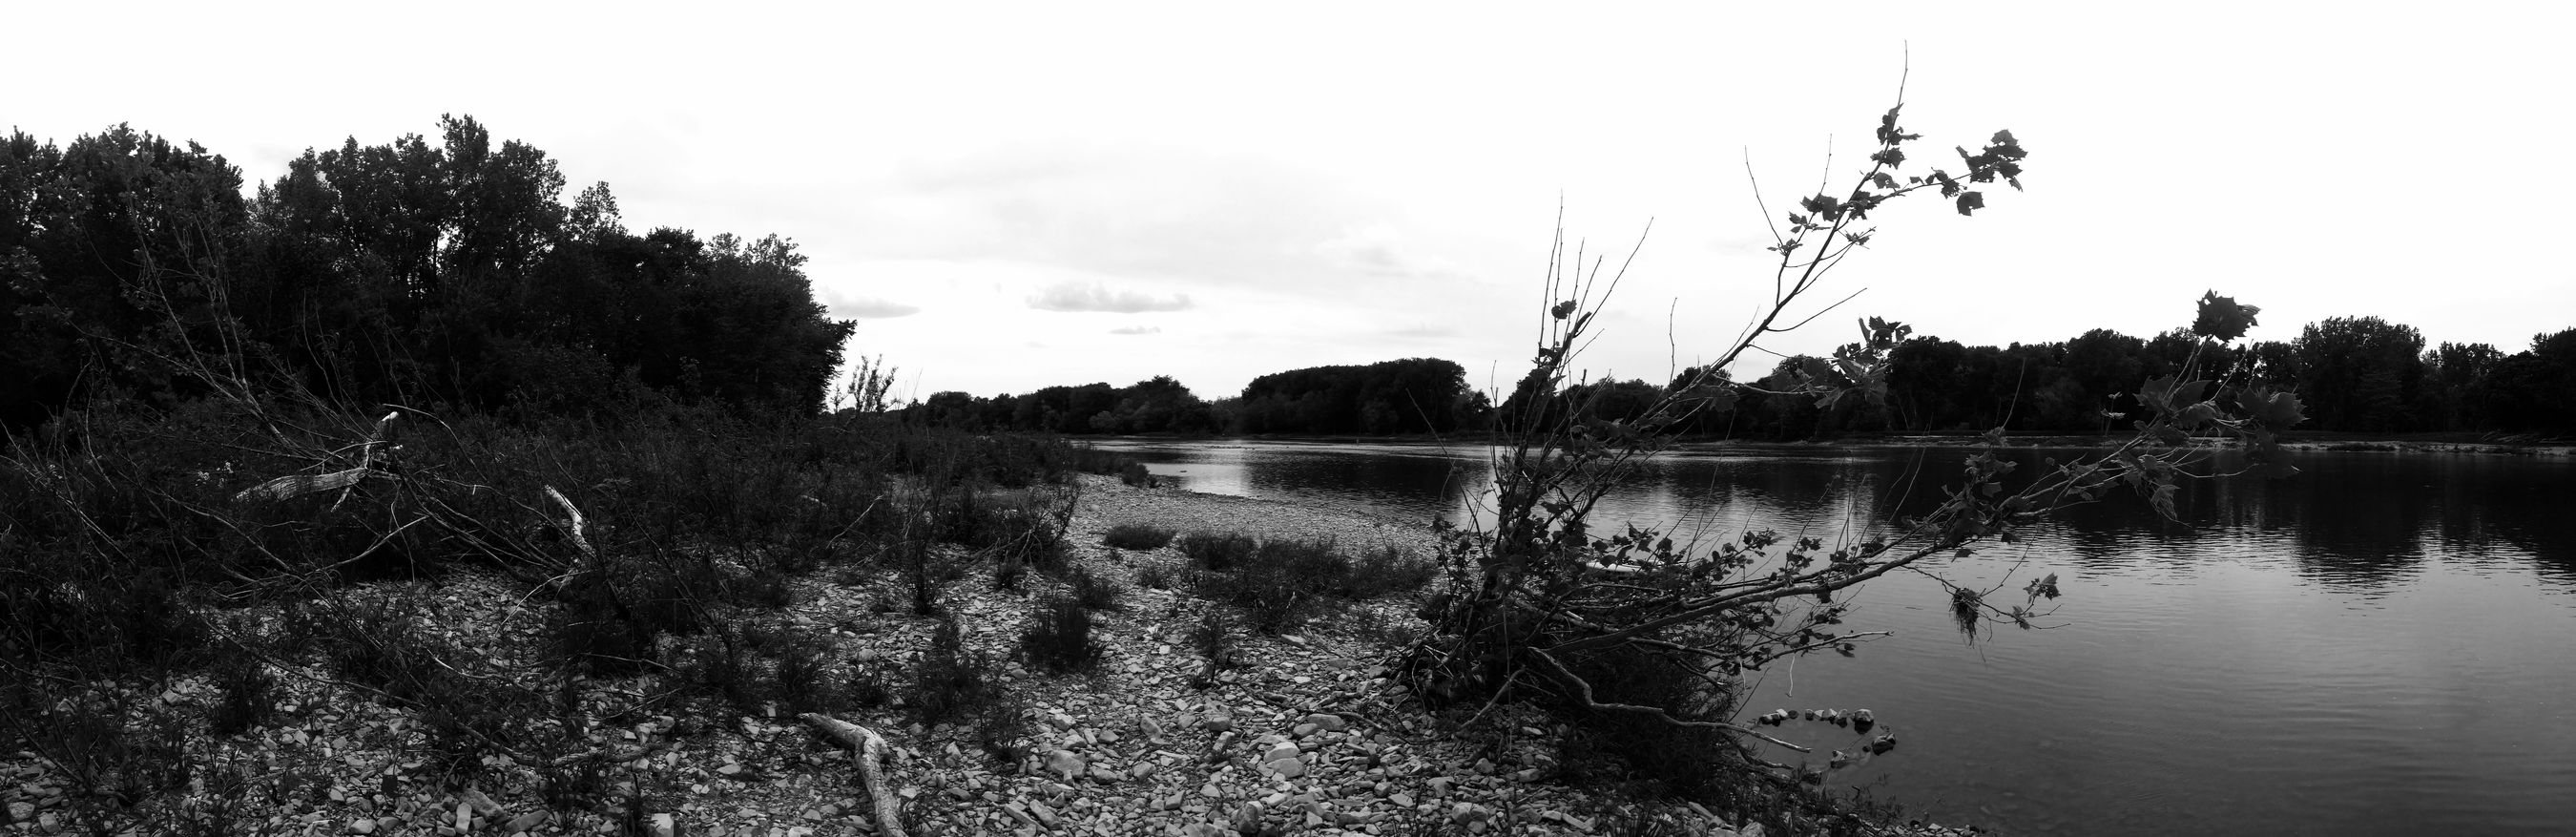 Ohio Kayaking Maumee River Black & White